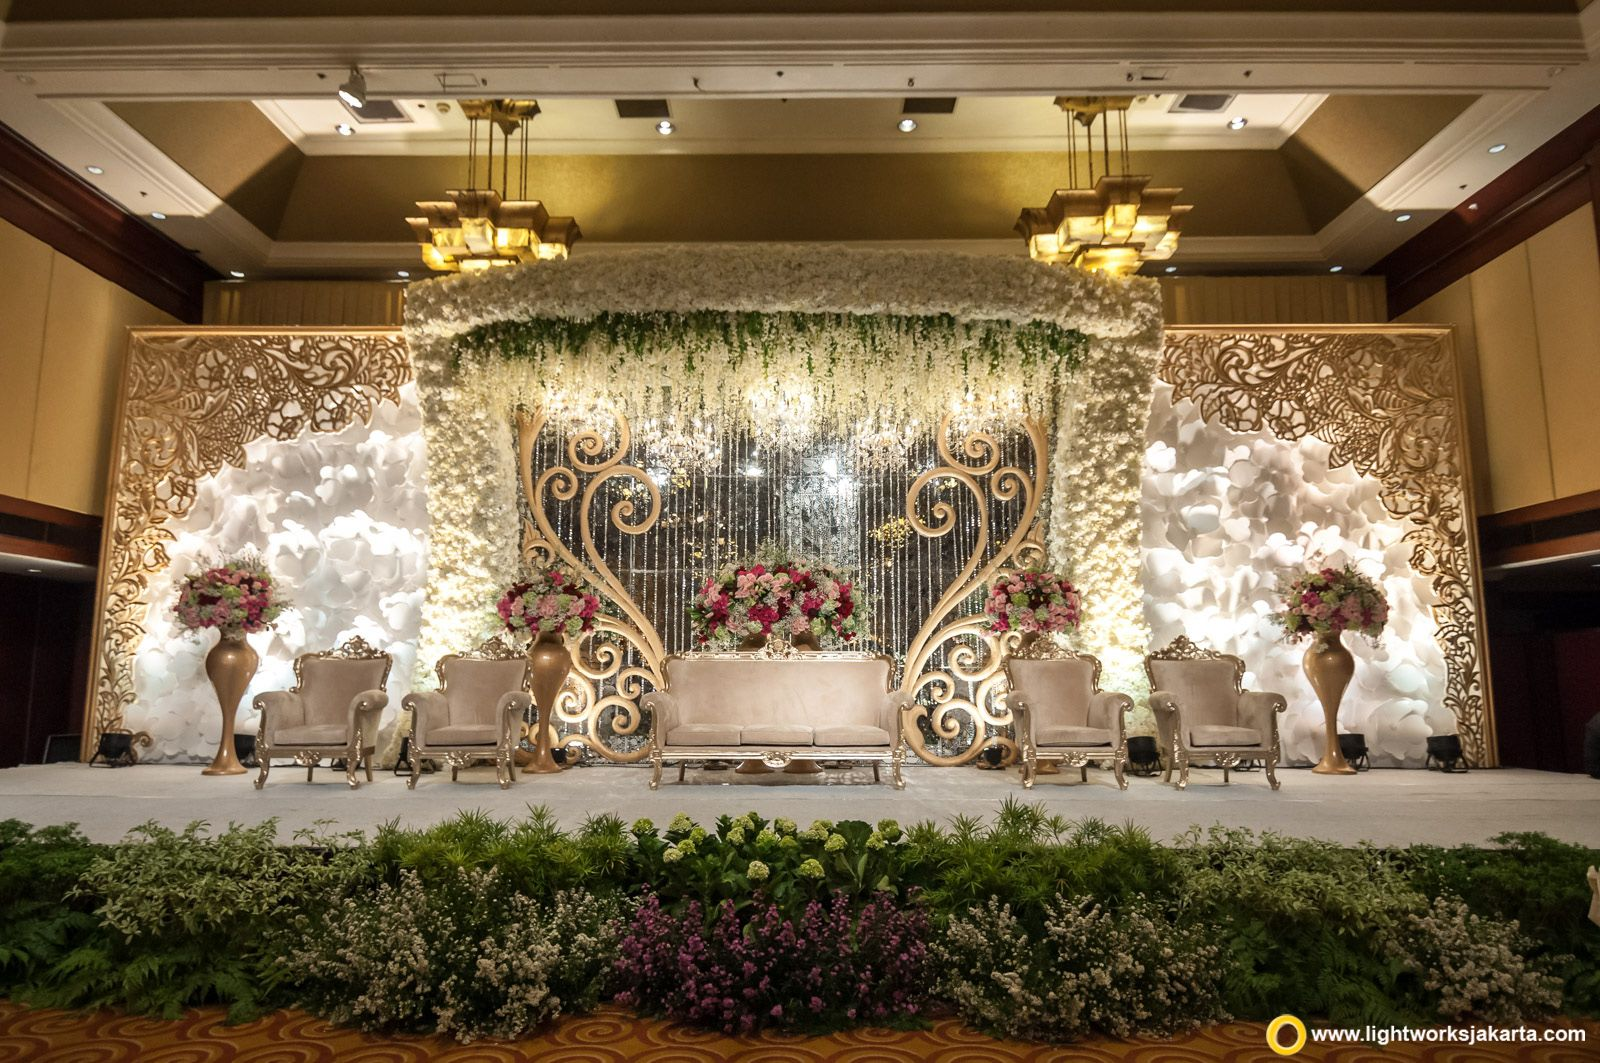 Putra and felicia wedding reception venue at hotel borobudur putra and felicia wedding reception venue at hotel borobudur jakarta decoration by white pearl junglespirit Choice Image